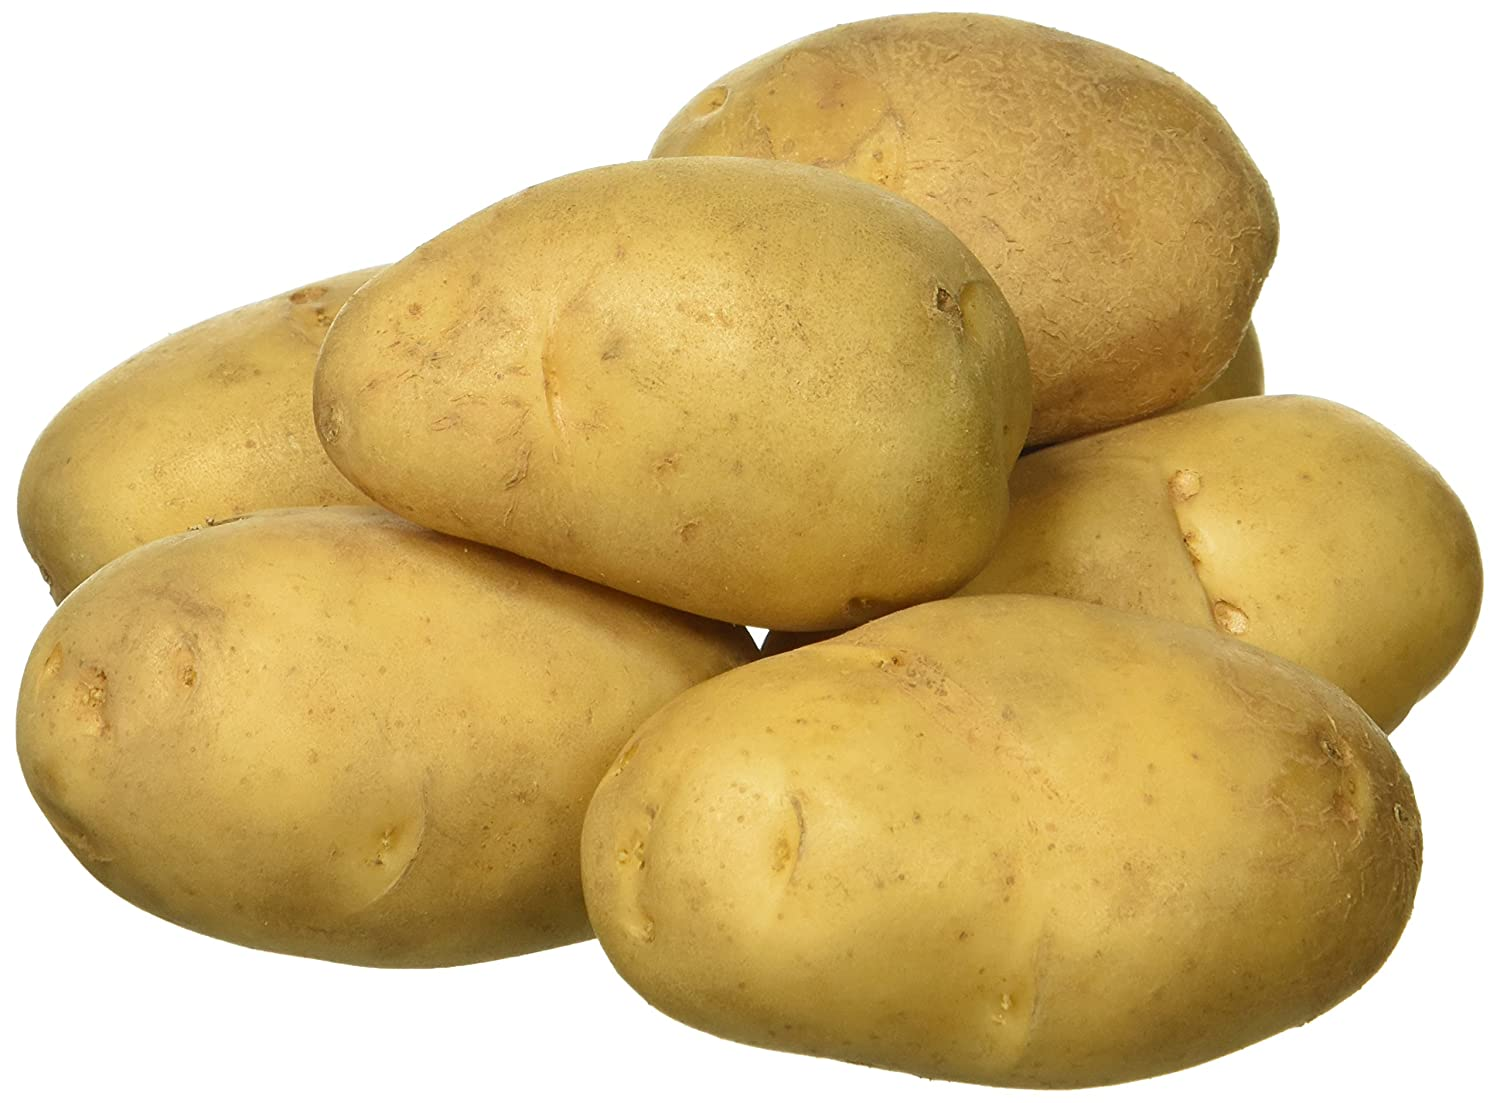 Image result for potatoes""